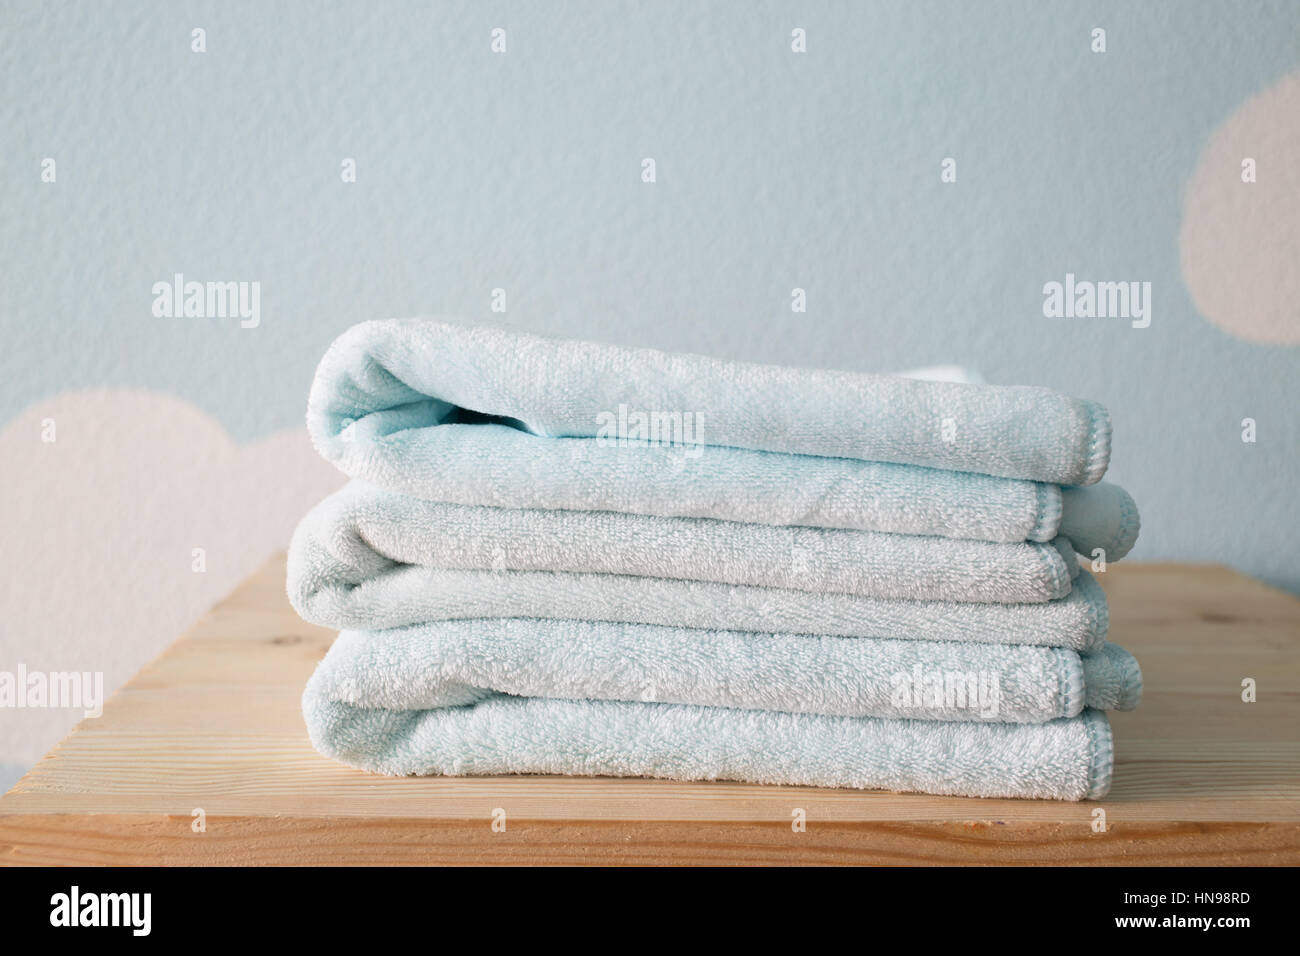 Towels on the shelf in the bathroom Stock Photo: 133584849 - Alamy